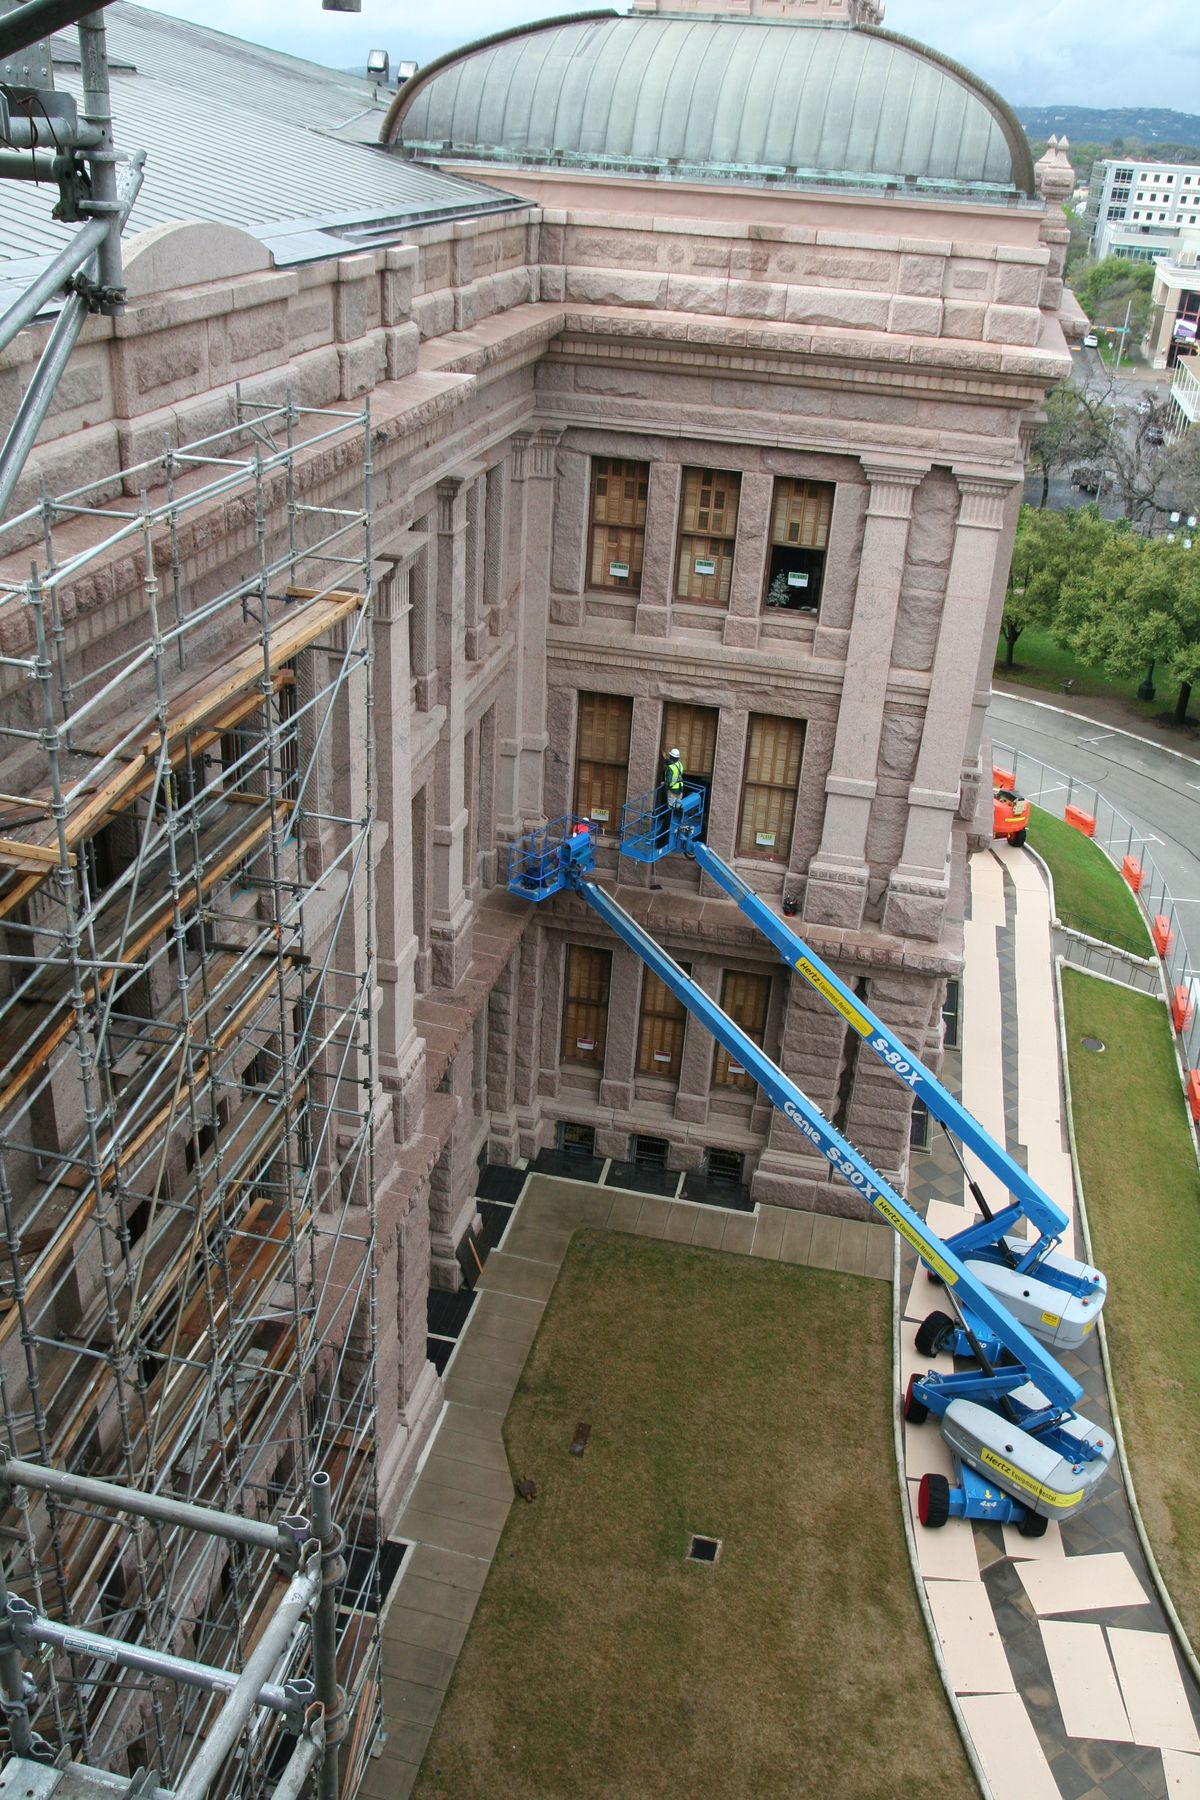 Capitol, scaffolding, cherry pickers